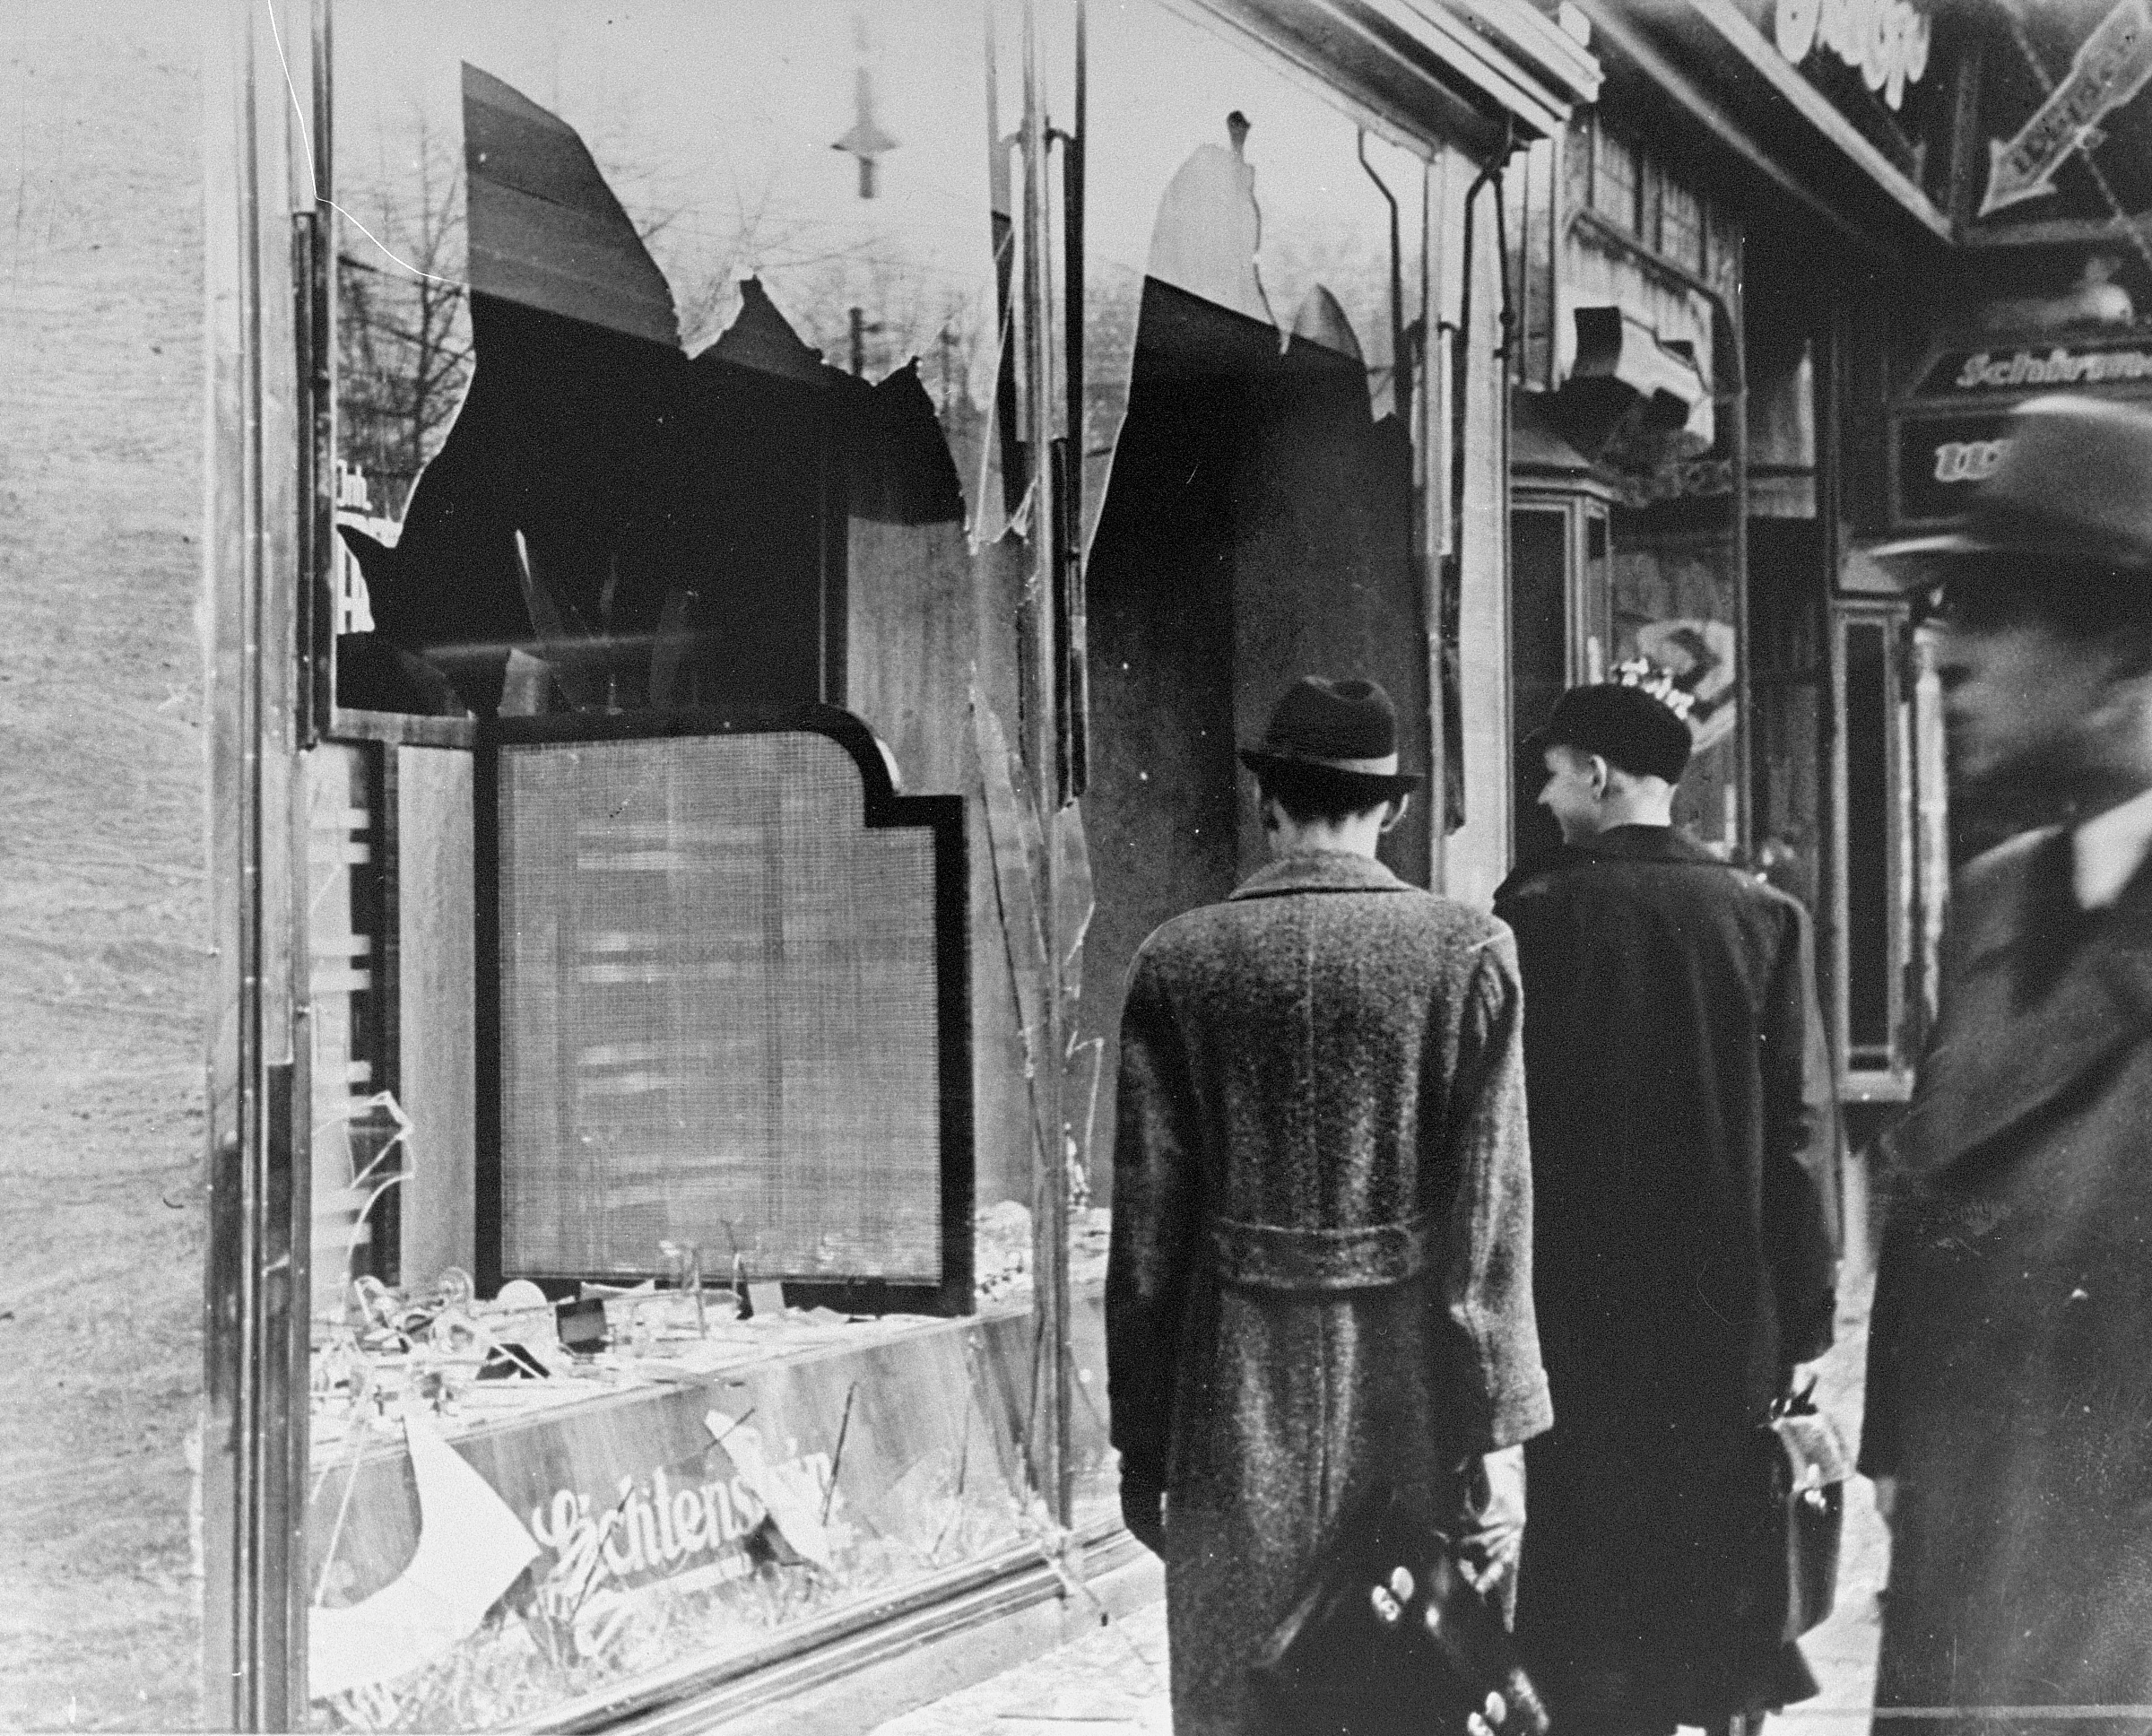 https://i2.wp.com/upload.wikimedia.org/wikipedia/en/2/2b/Germans_walk_by_a_Jewish_business_destroyed_on_Kristallnacht.jpg